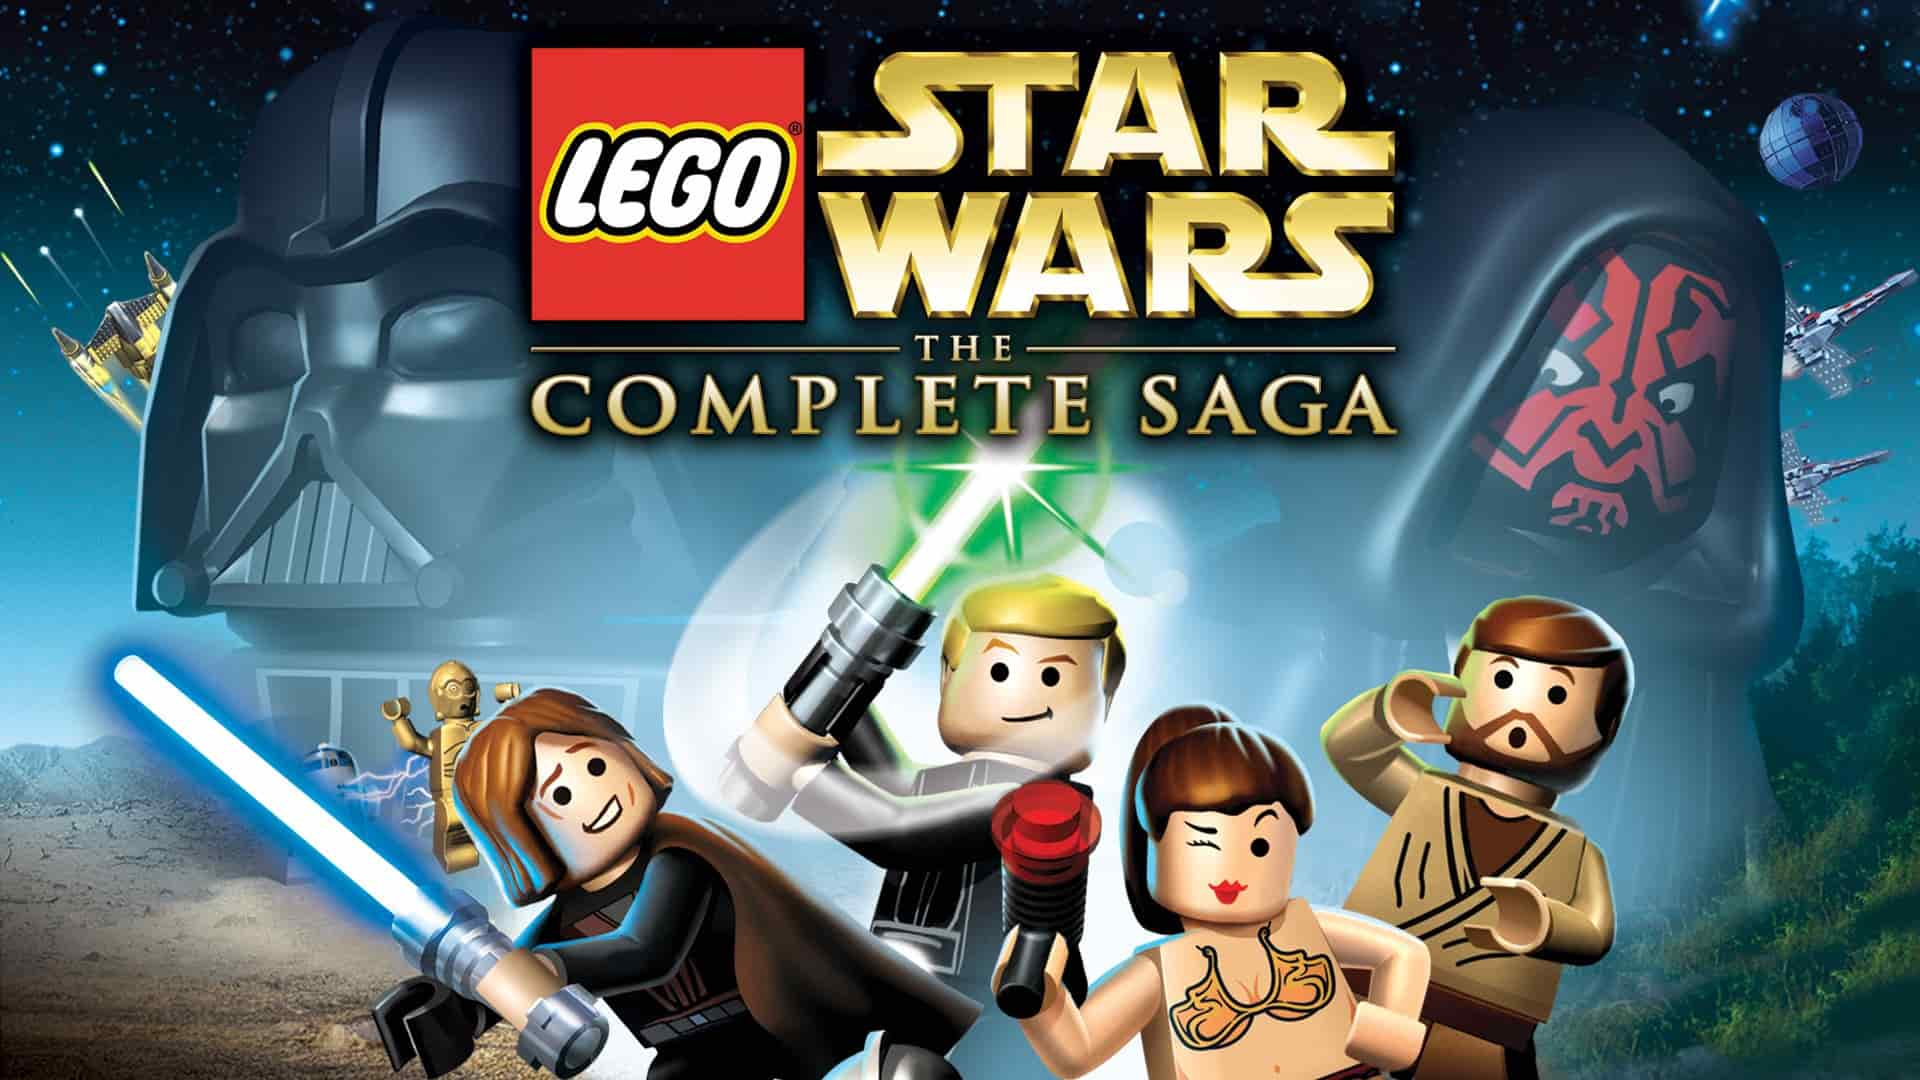 Lego Star Wars Thec omplete Saga Free Download